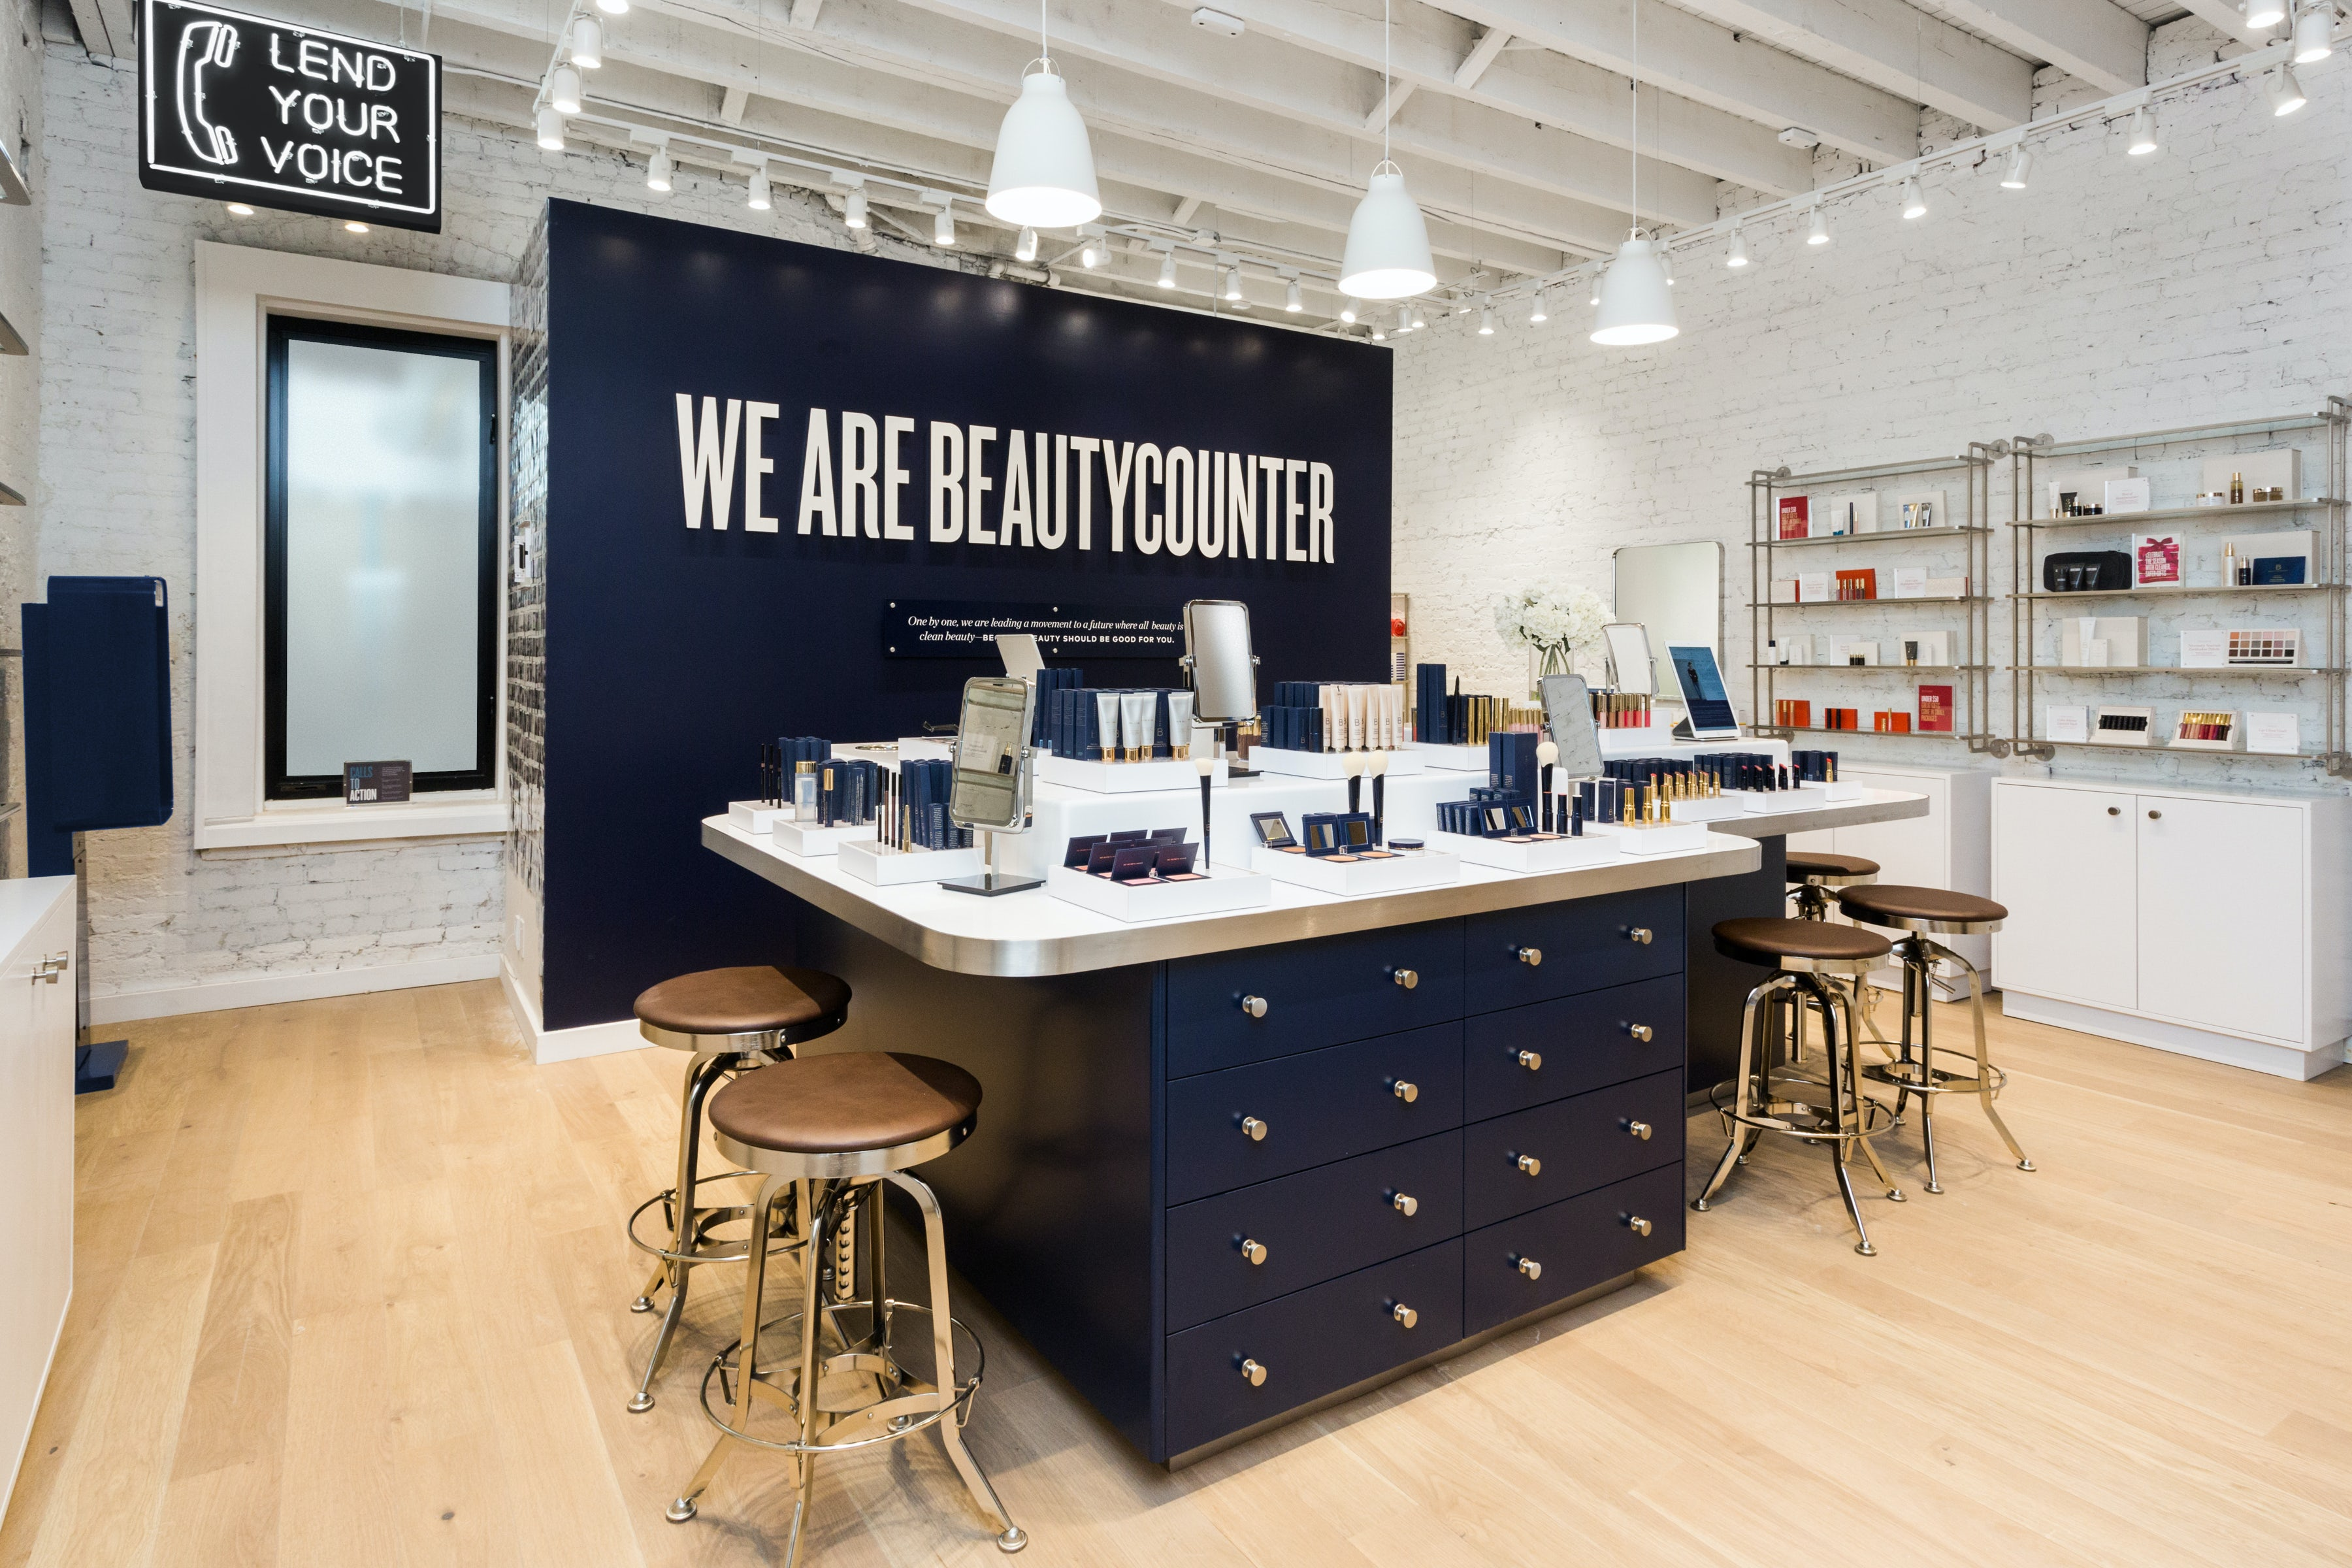 Inside Beautycounter's first store in New York City.